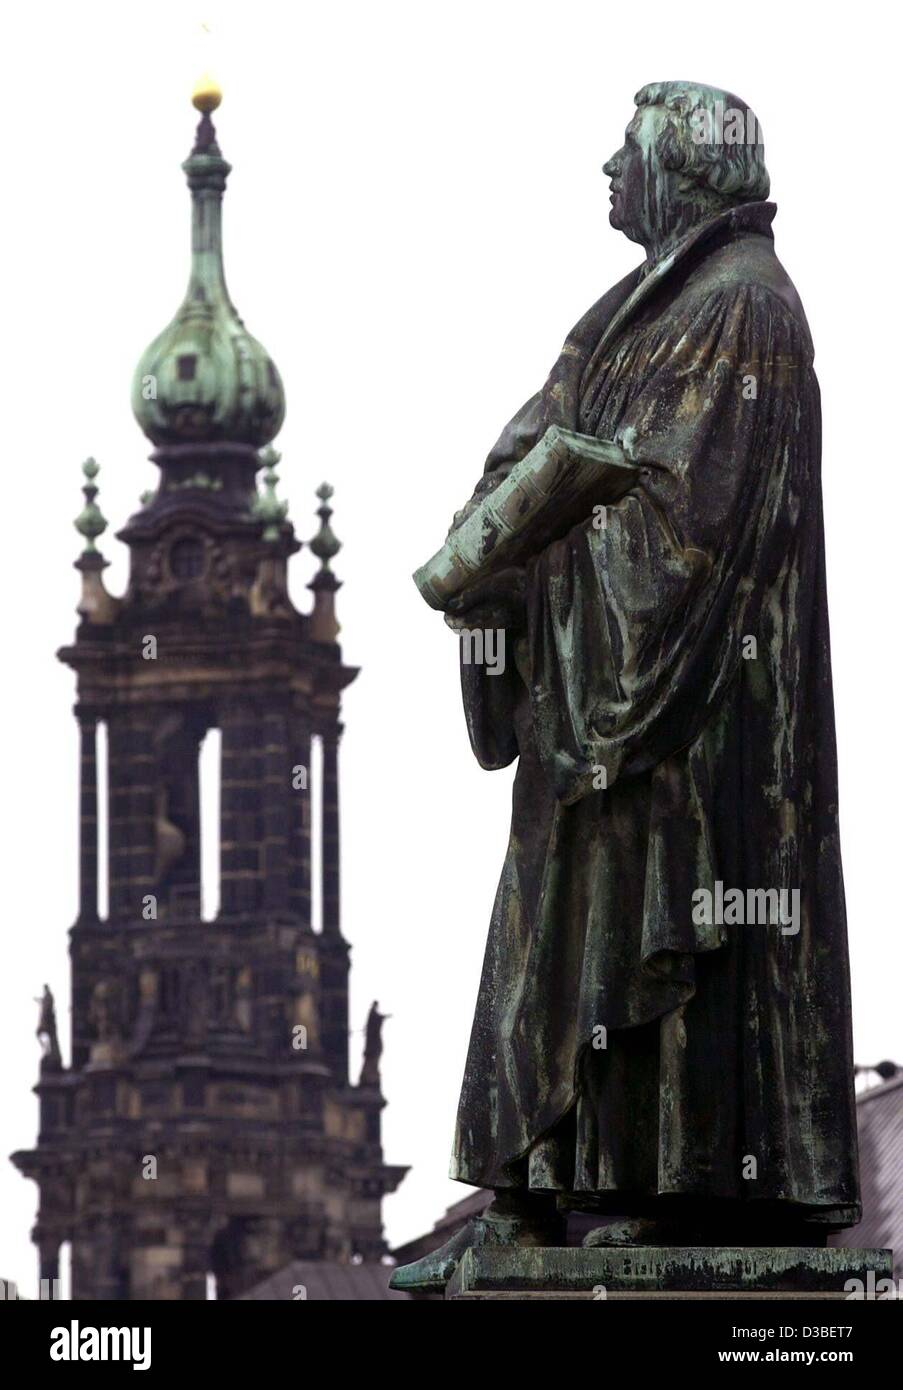 (dpa files) - A statue of reformer Martin Luther stands at the protestant 'Frauenkirche' church looking - Stock Image